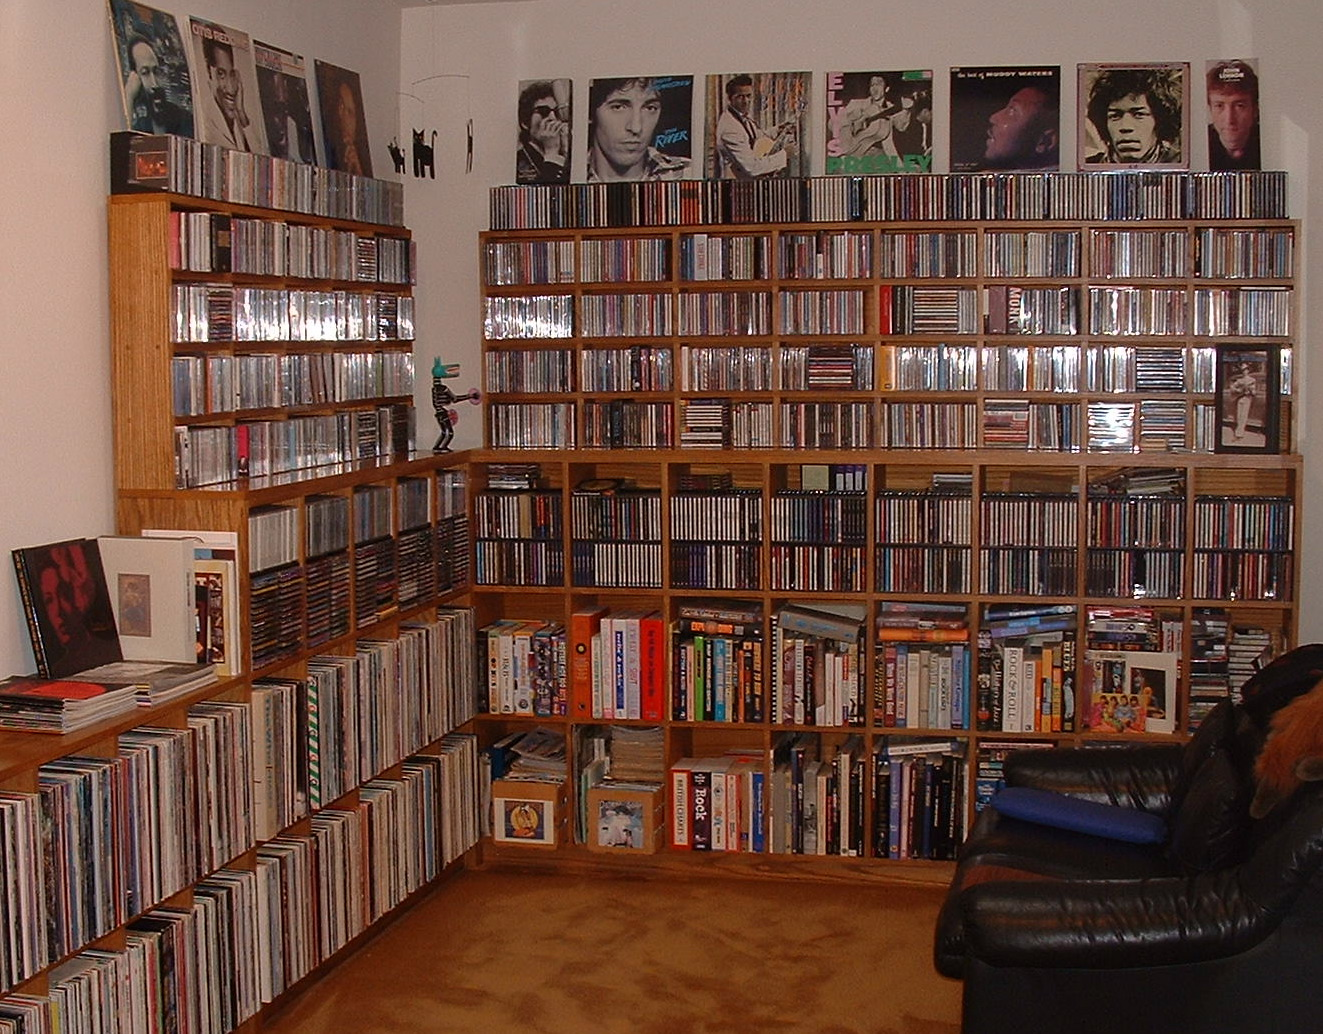 Gator's music library room